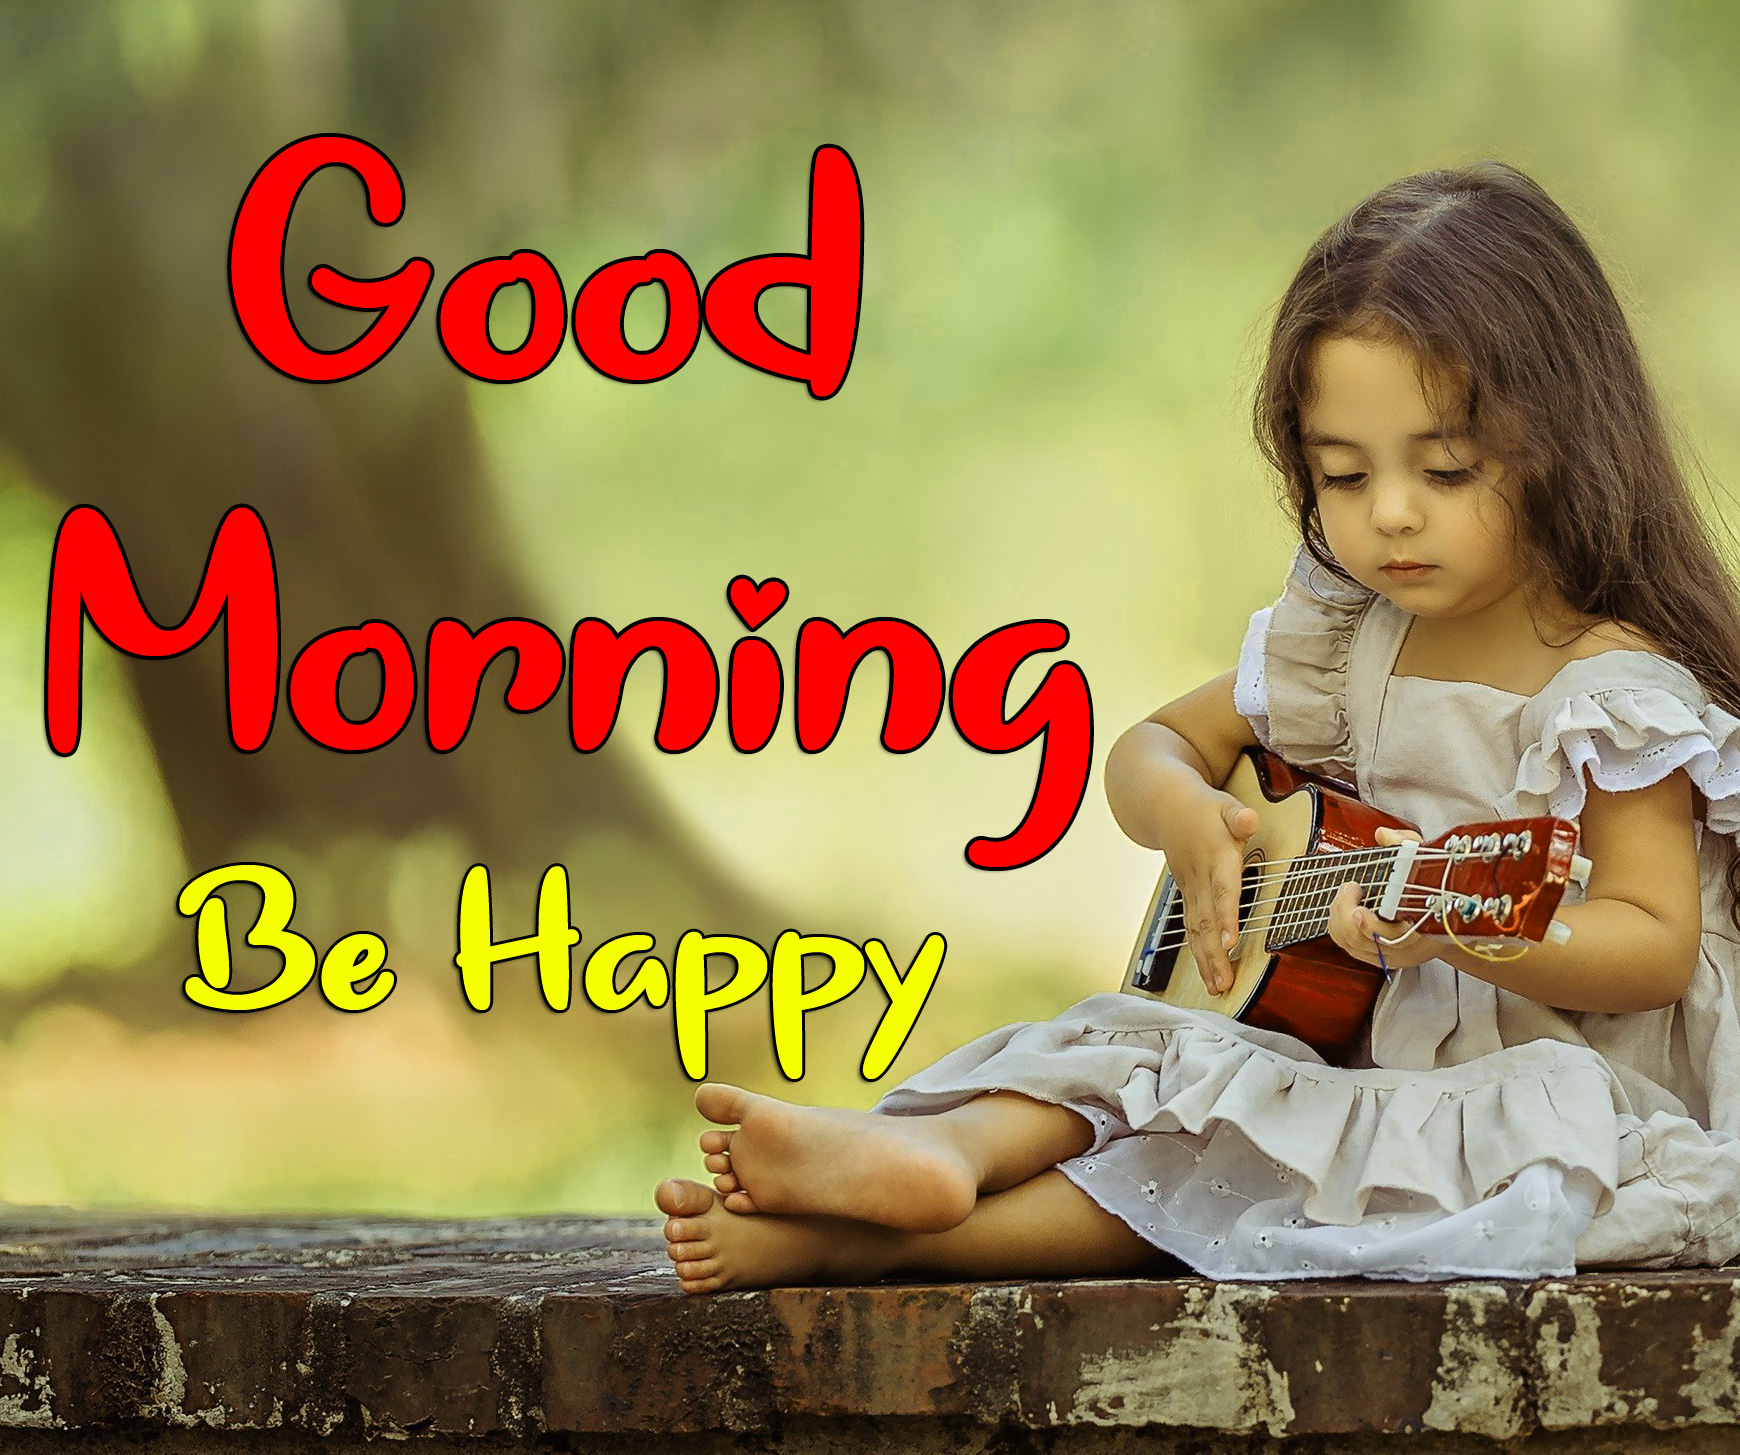 Happy Family Good Morning Wishes Images 5